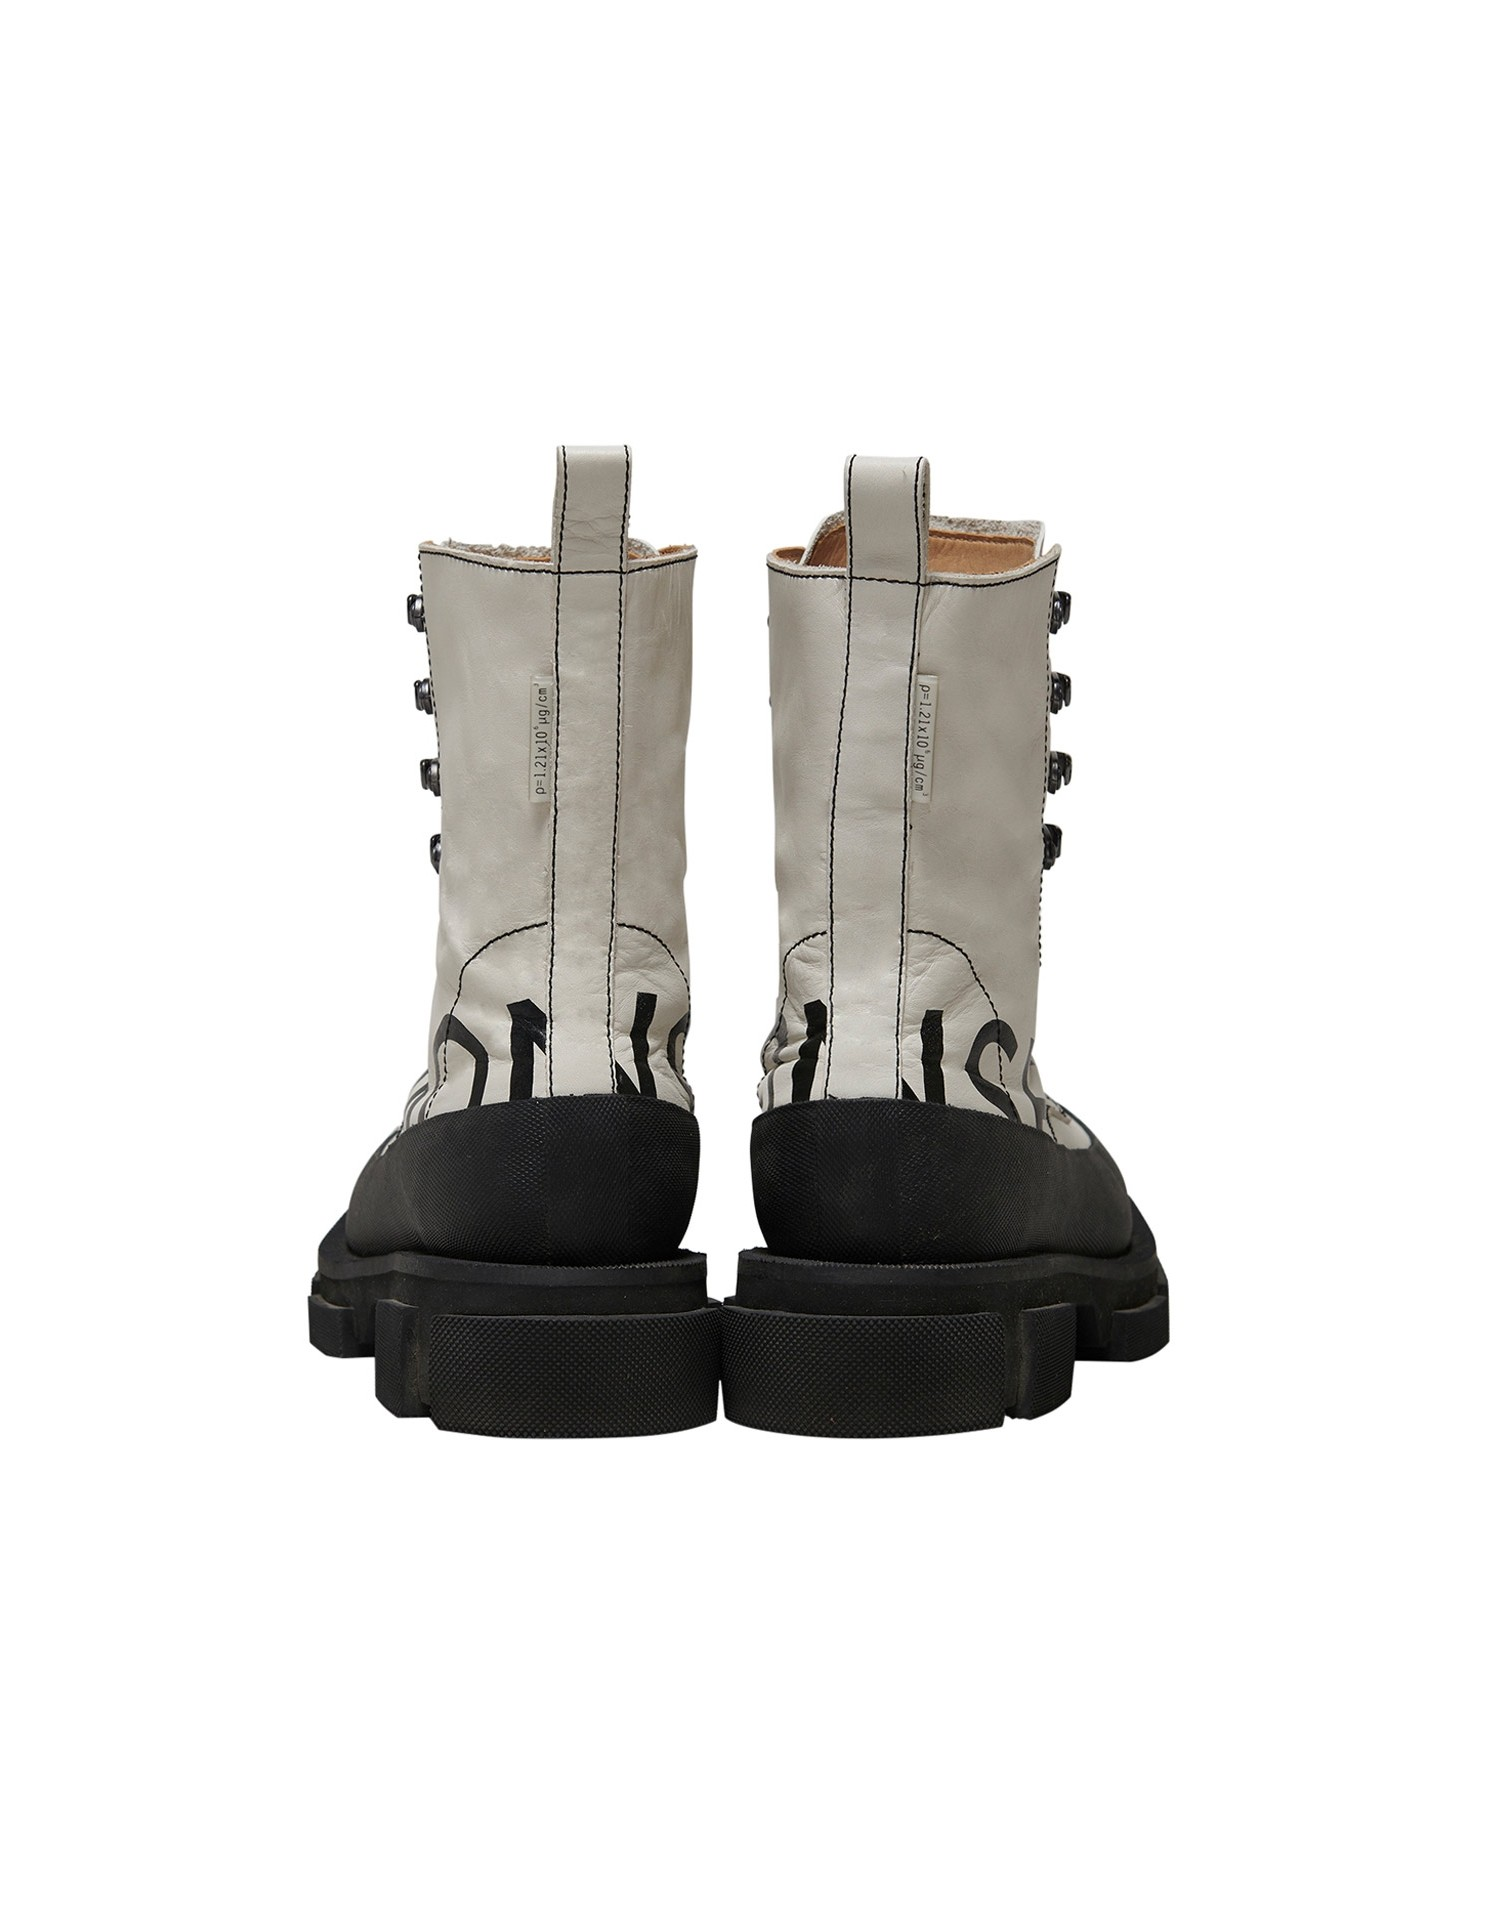 Both x MONSE Gao High Boots in White and Black Back View